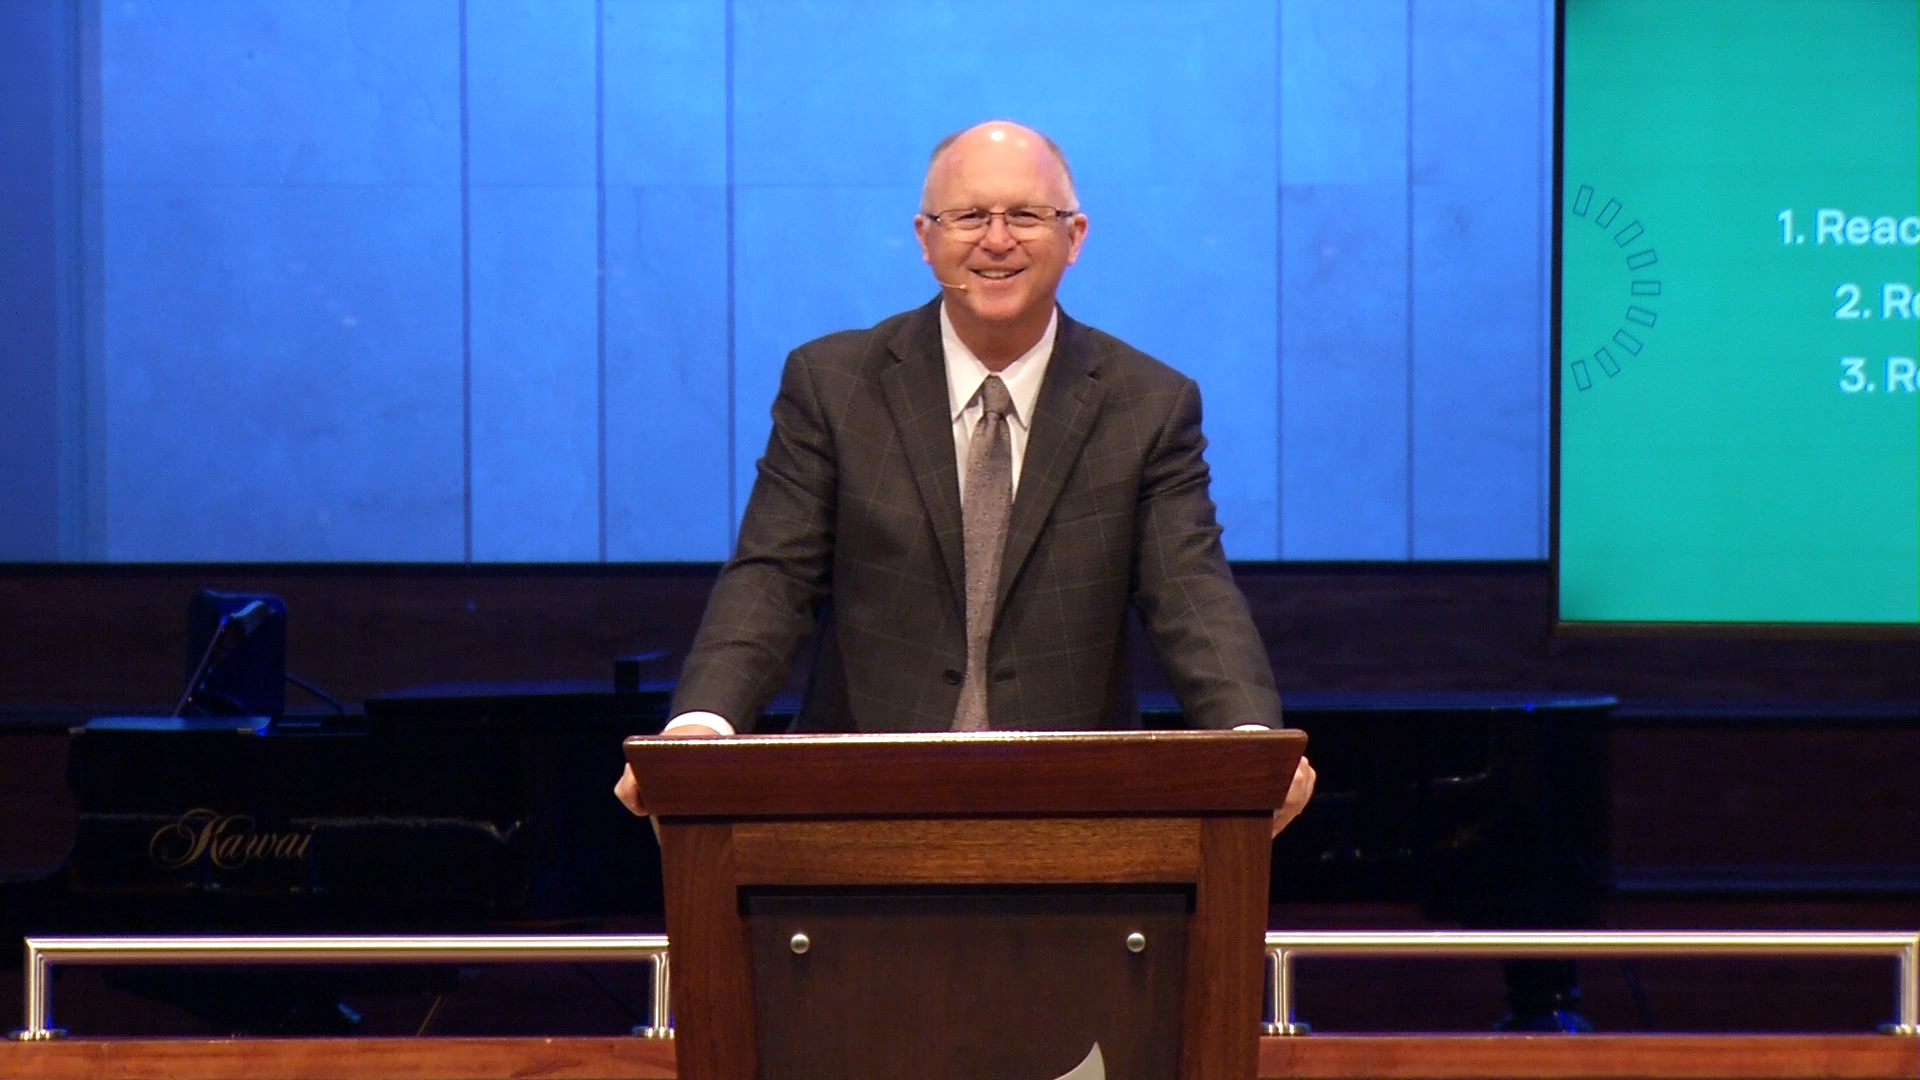 Pastor Paul Chappell: Reaching Forth in Trials